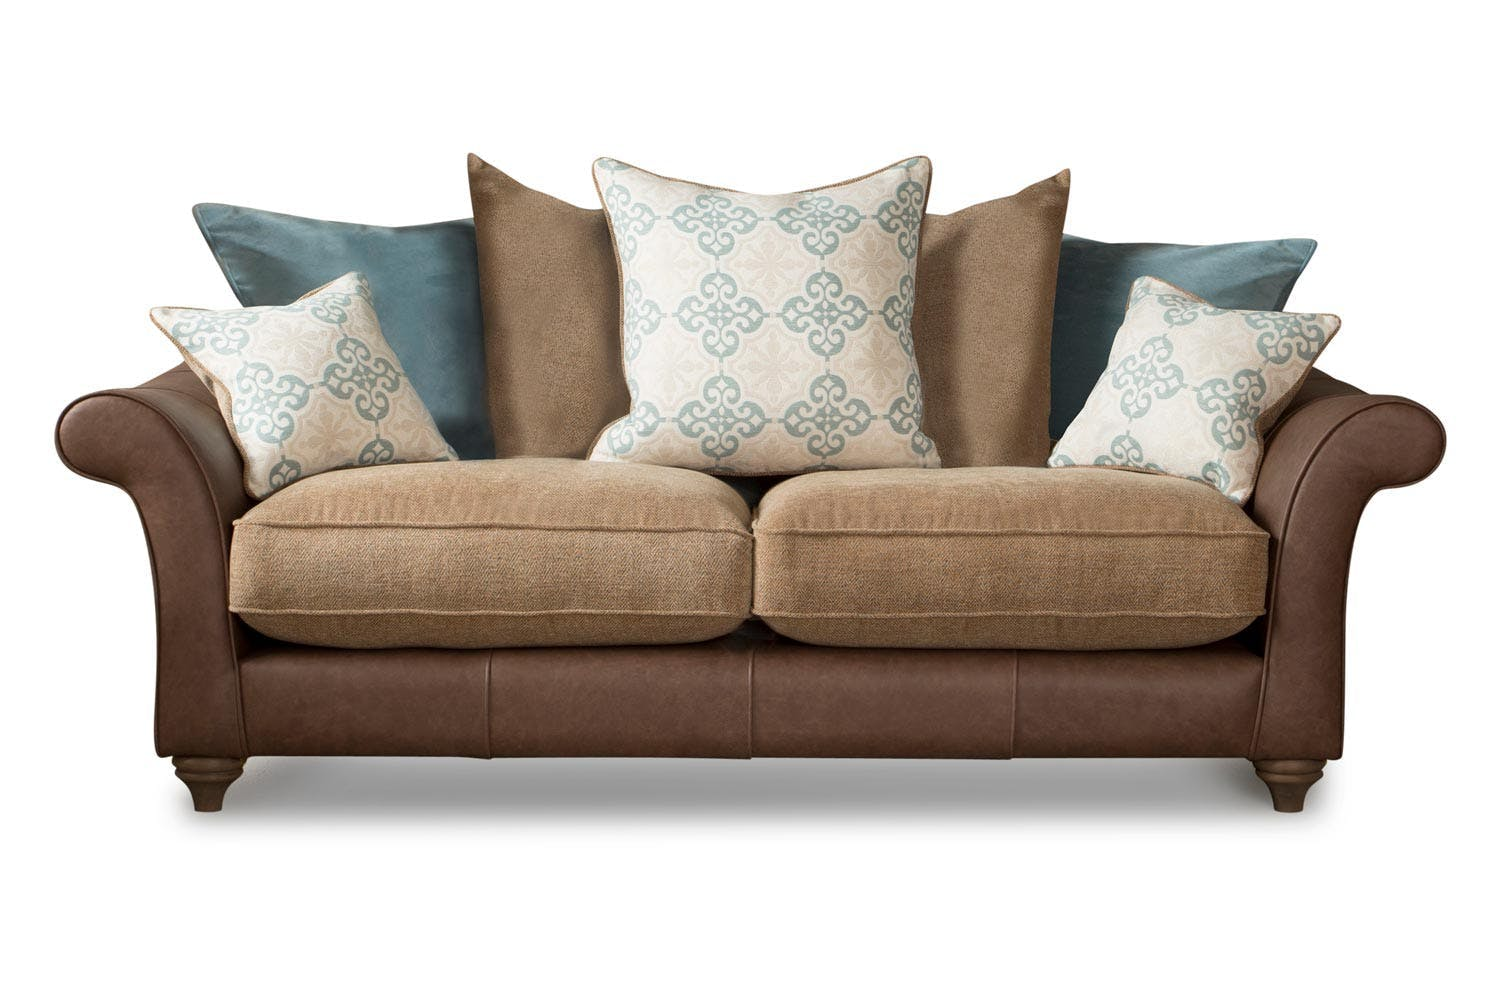 07f99dcc5367 Lloyd 3 Seater Scatter Back Heritage Sofa |Angus Gold&Lunga Blue ...